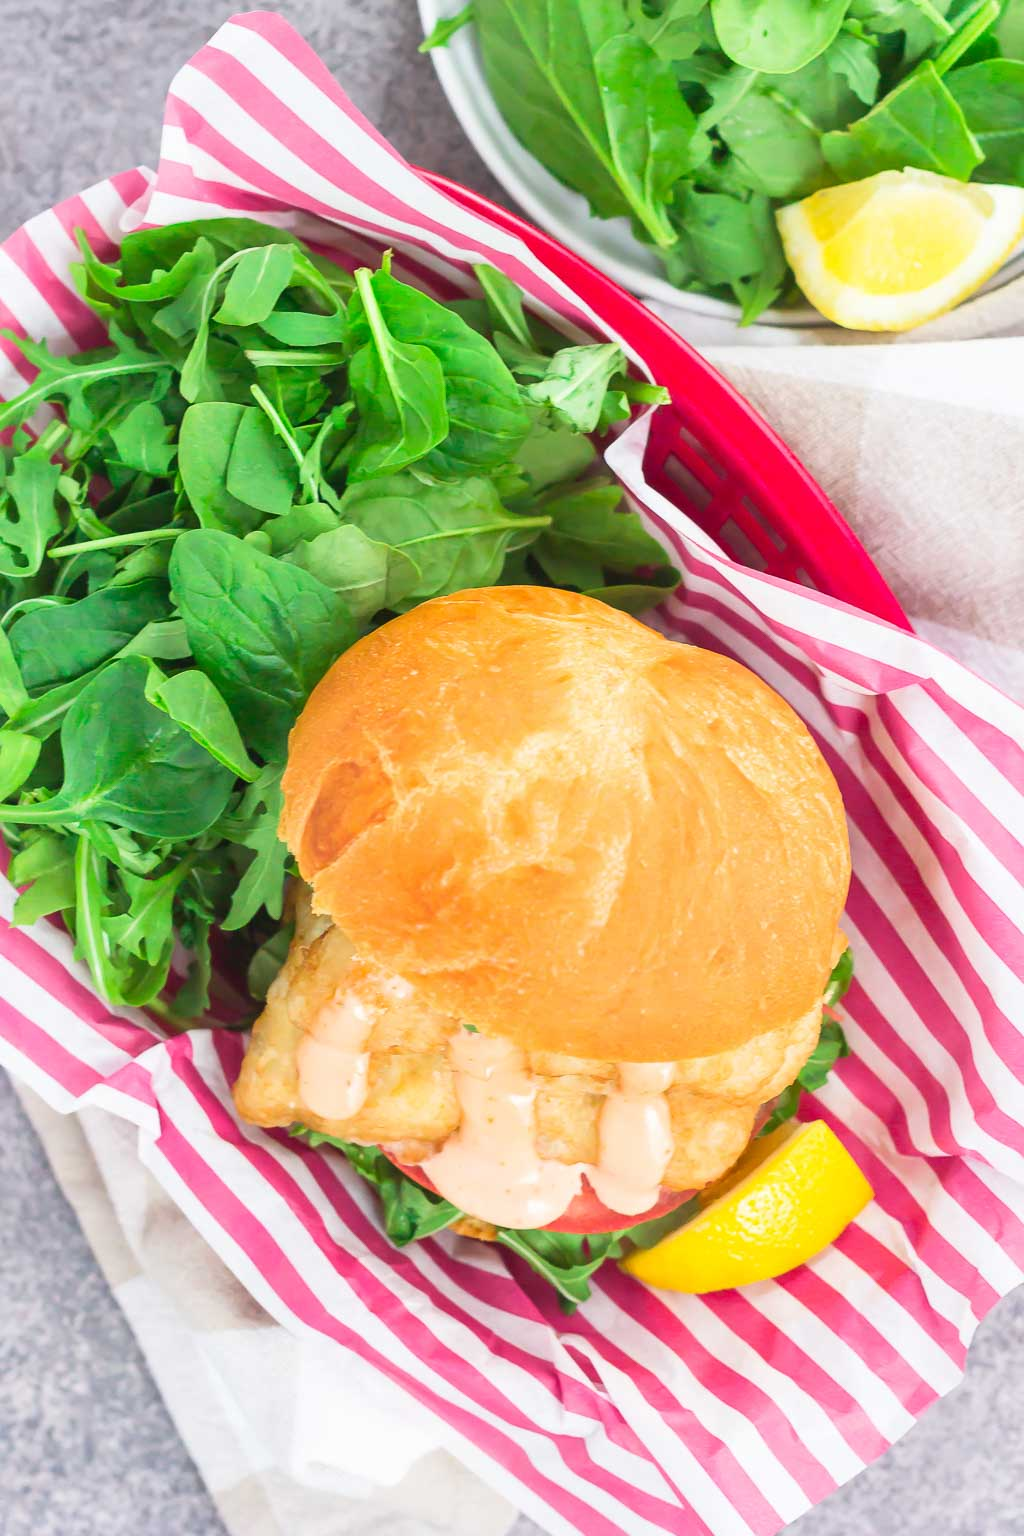 This Crispy Fish Sandwich with Sriracha Mayo is an easy weeknight meal that's loaded with flavor. Crispy, beer-battered fillets are nestled on a toasted bun and topped with a creamy sriracha mayonnaise. Fast, fresh, and simple to make, this easy dinner is ready in less than 30 minutes!